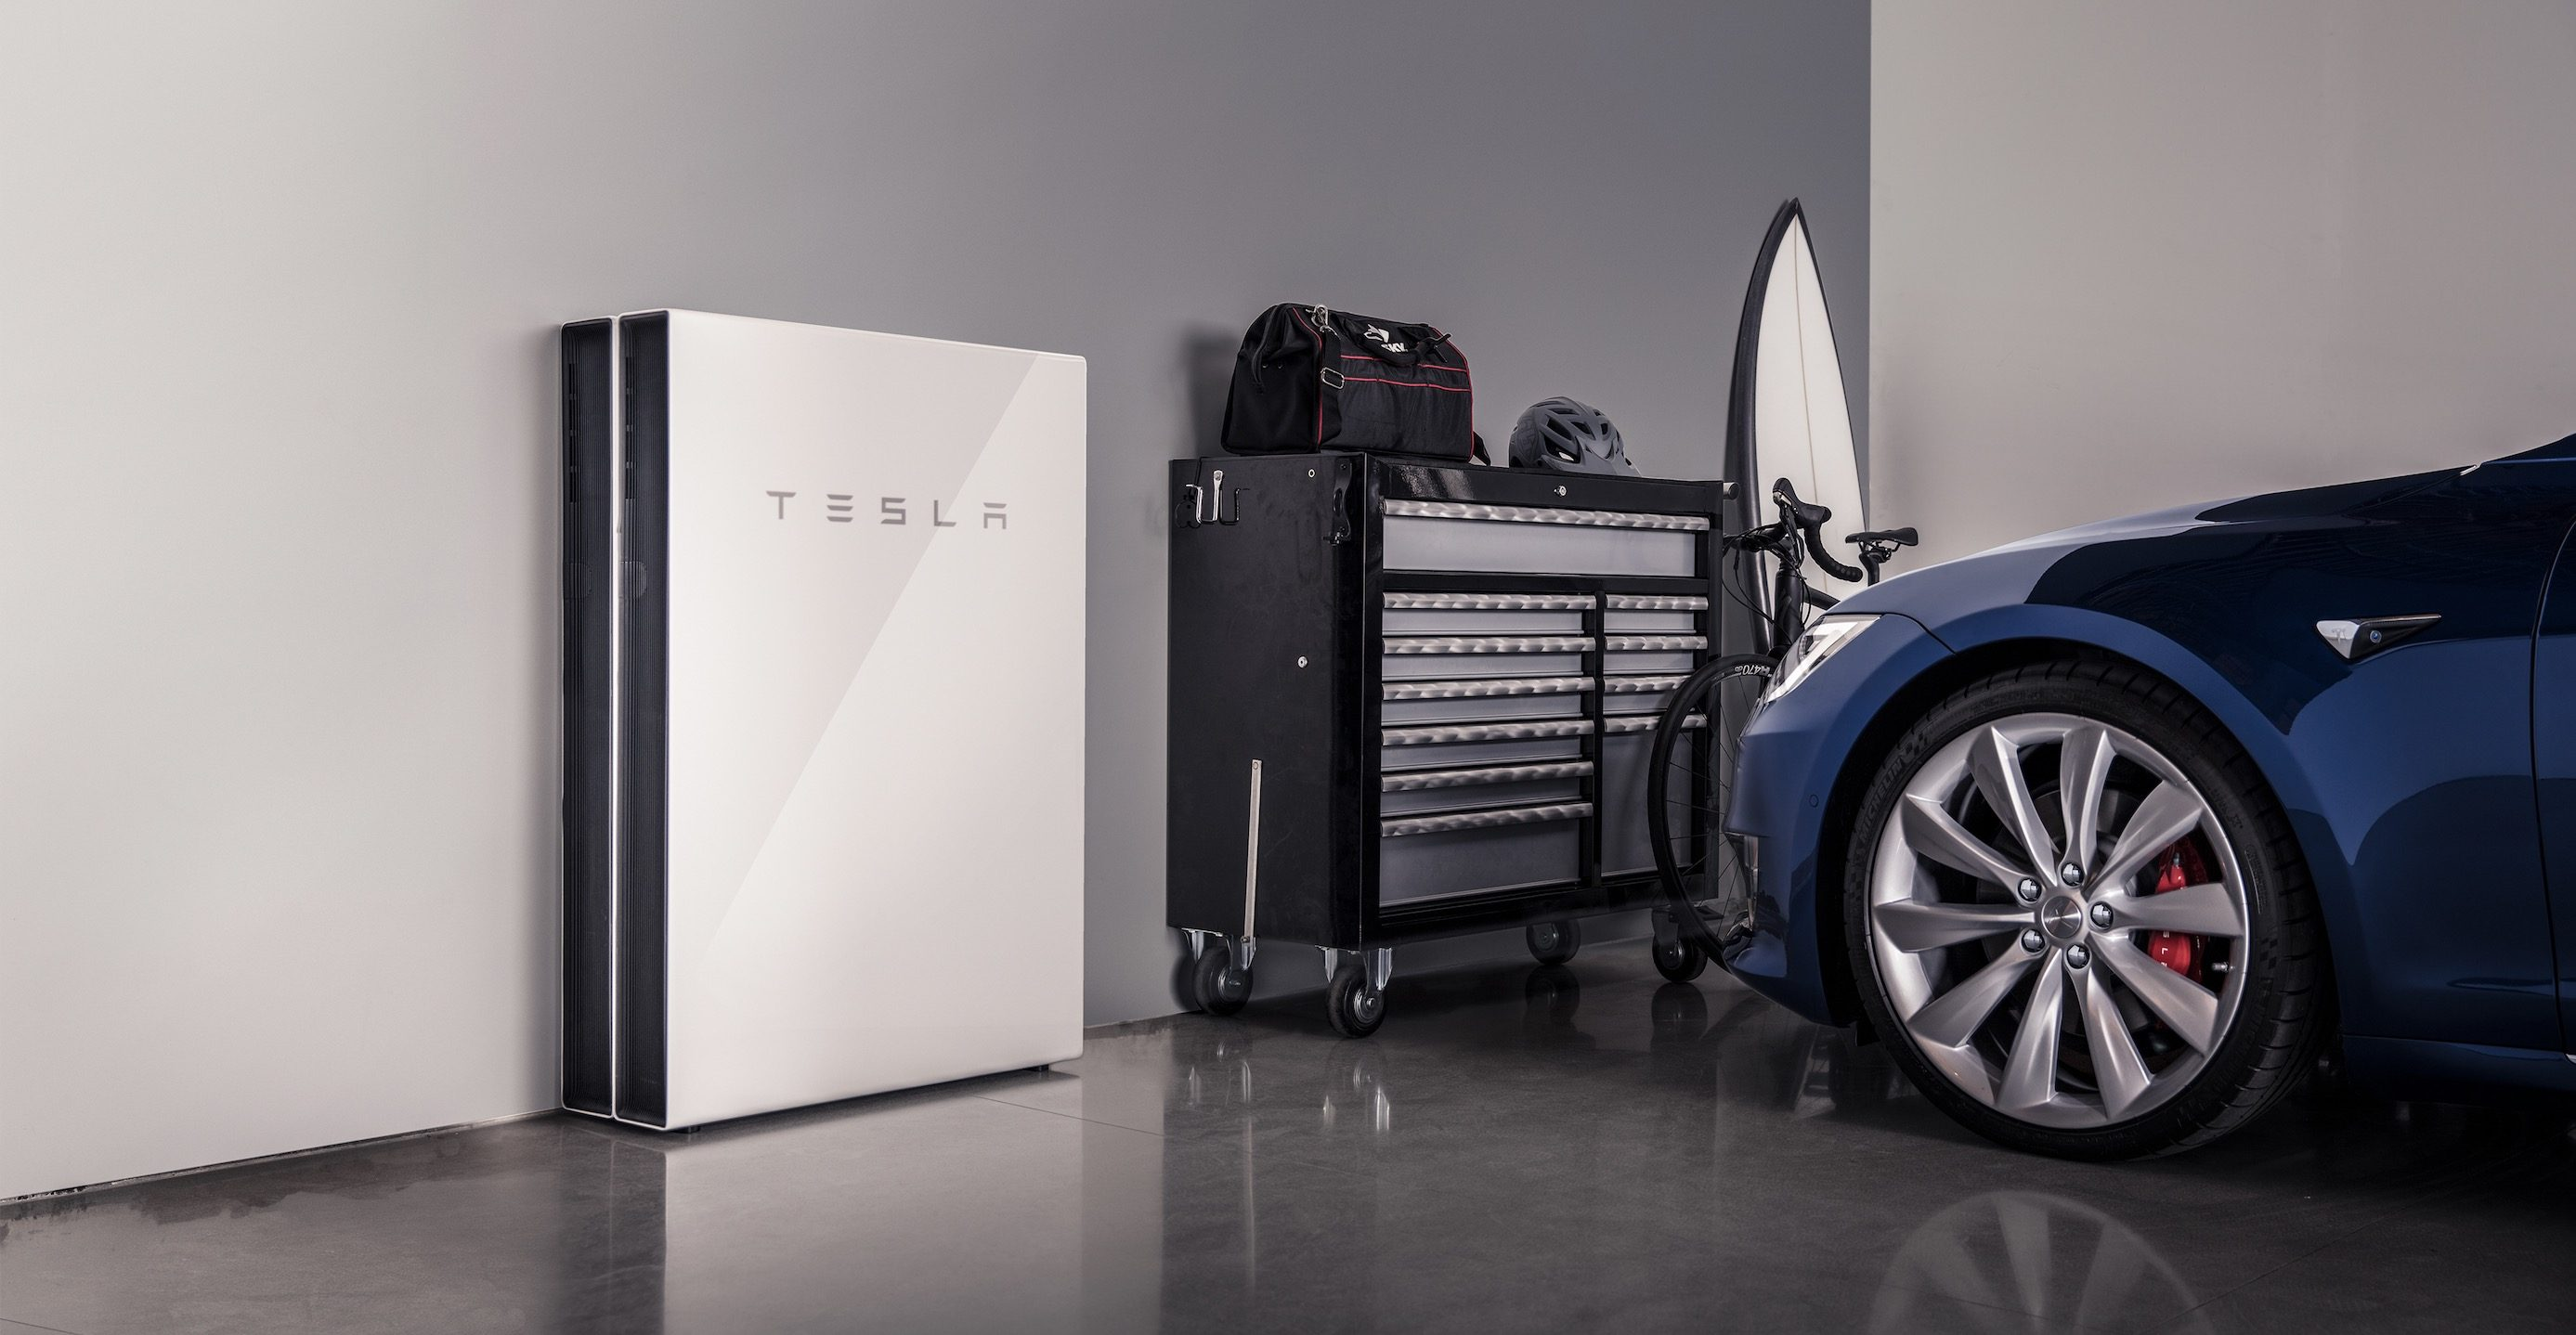 Tesla's virtual powerhouse with rechargeable batteries (Powerwall) expands to ?000 homes in Australia